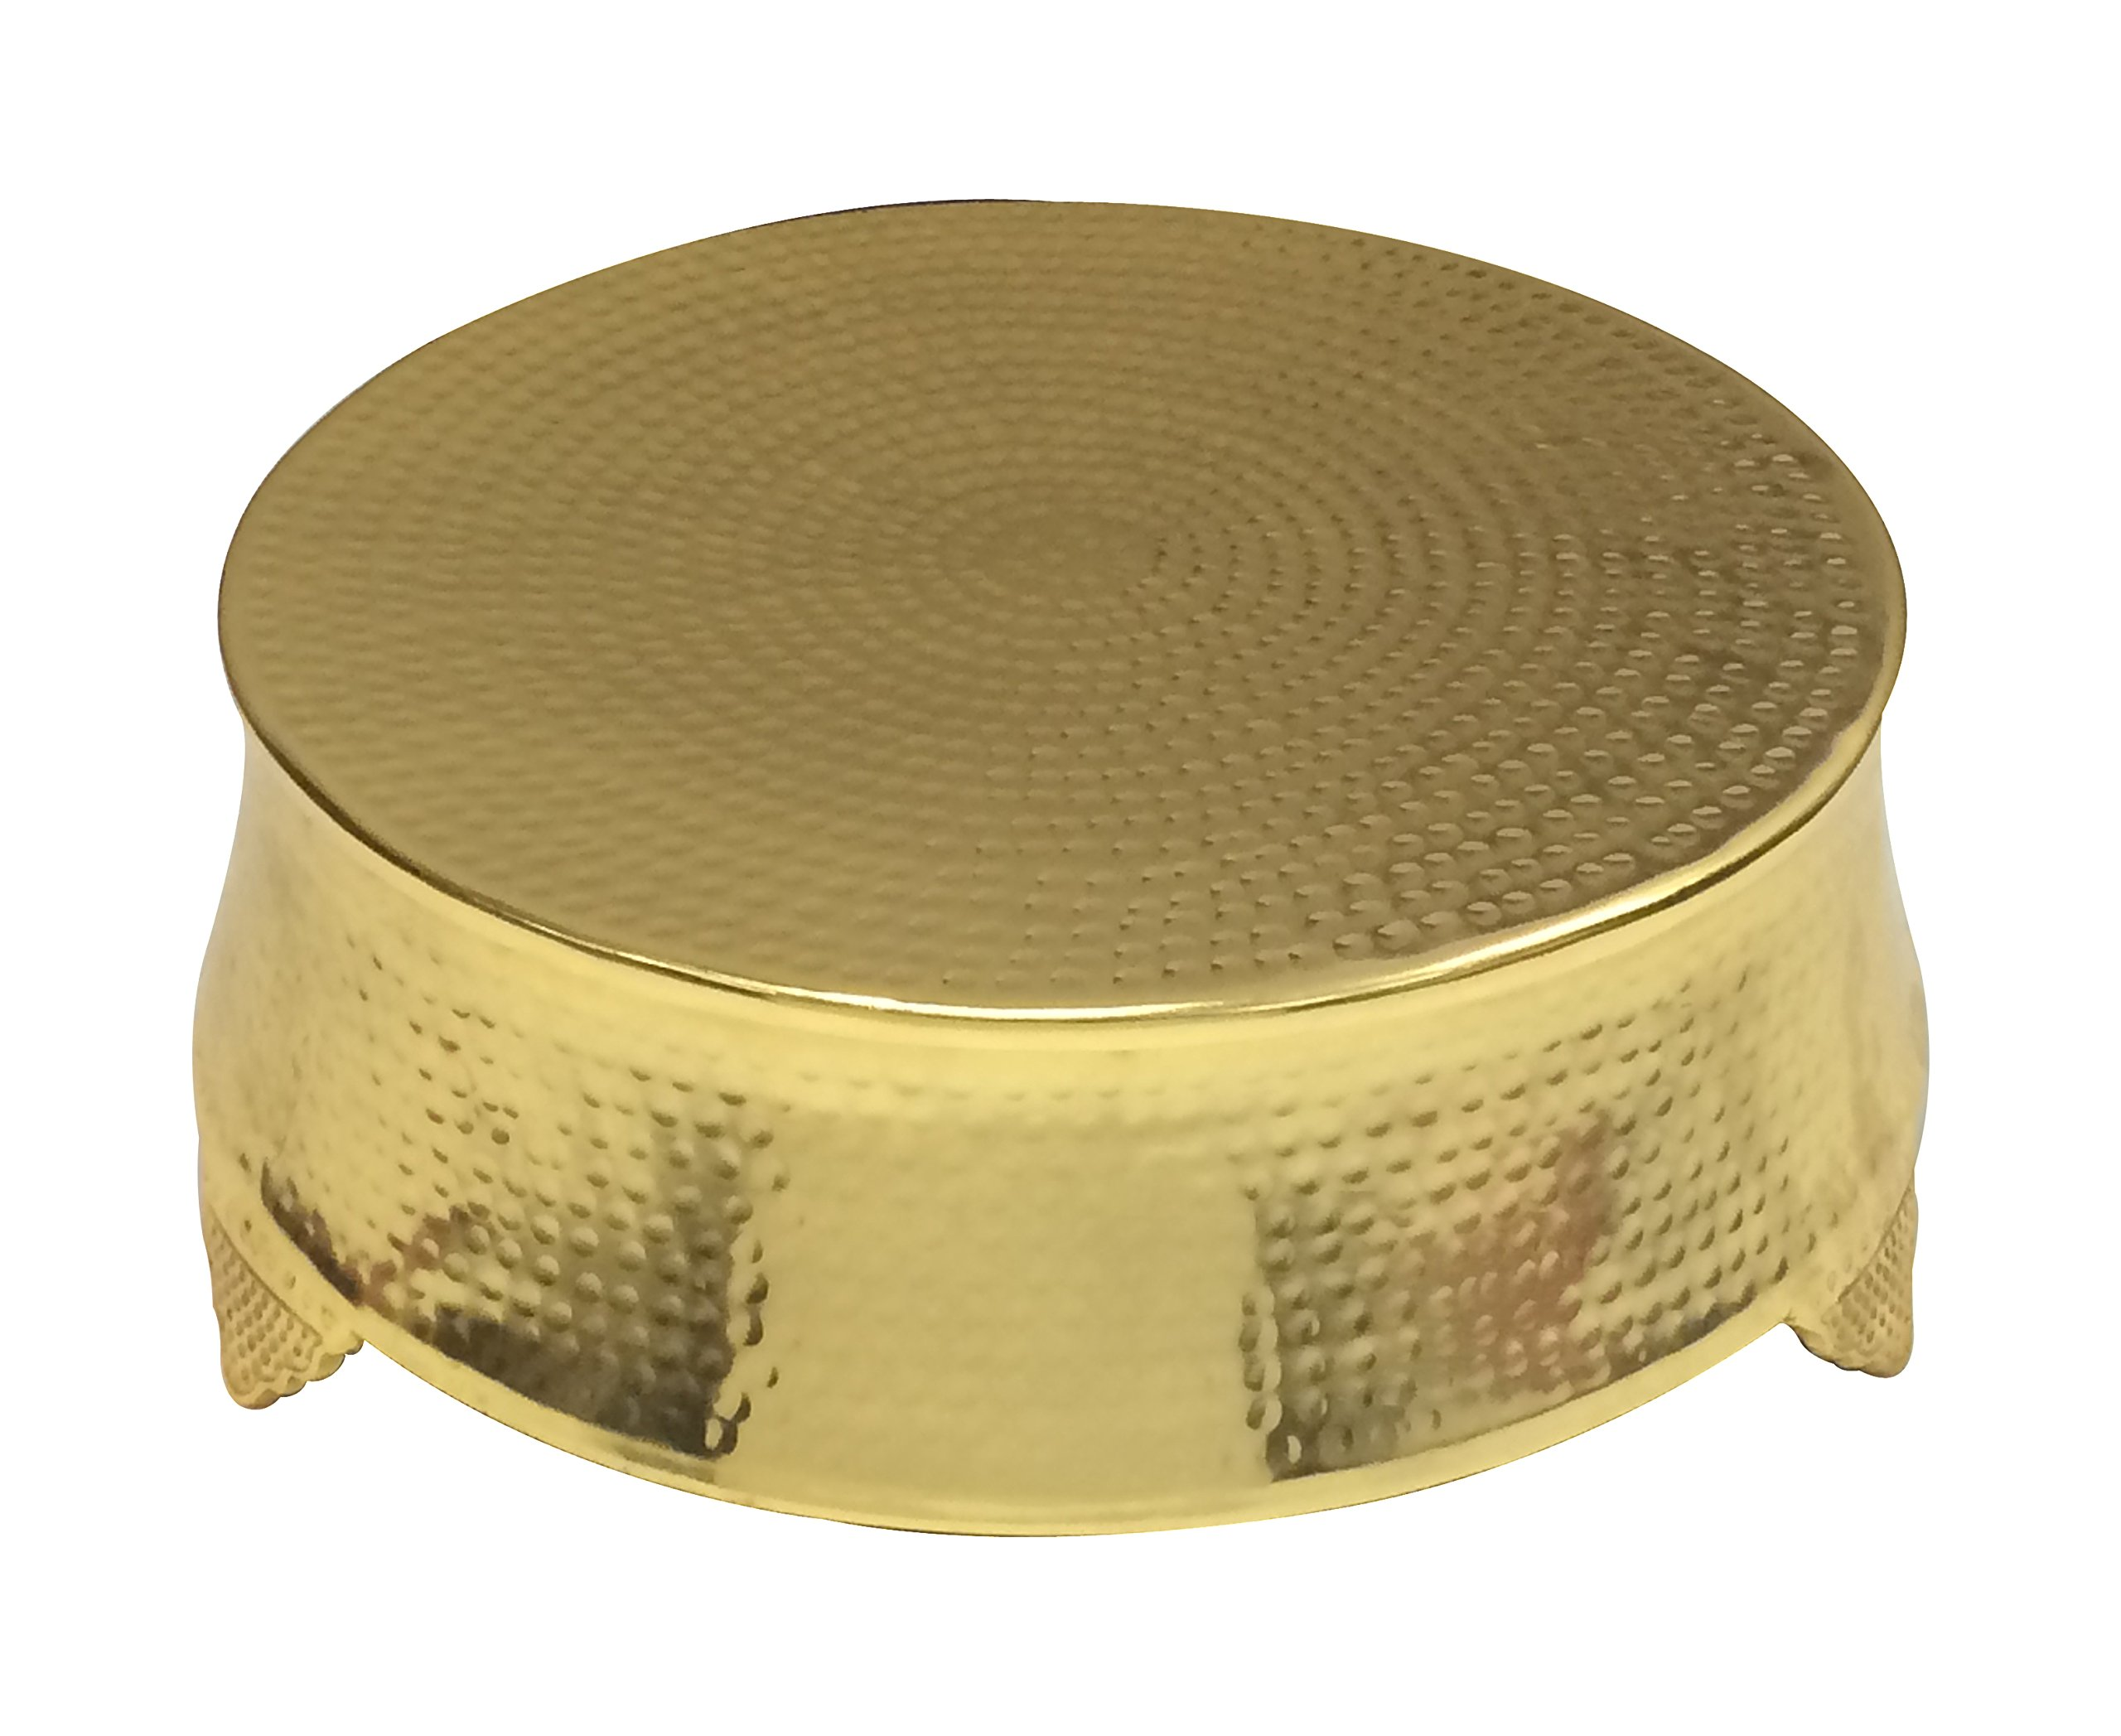 GiftBay Wedding Cake Stand Round 16'', Hammered Design, Gold Finish with Unique Tapered Sides